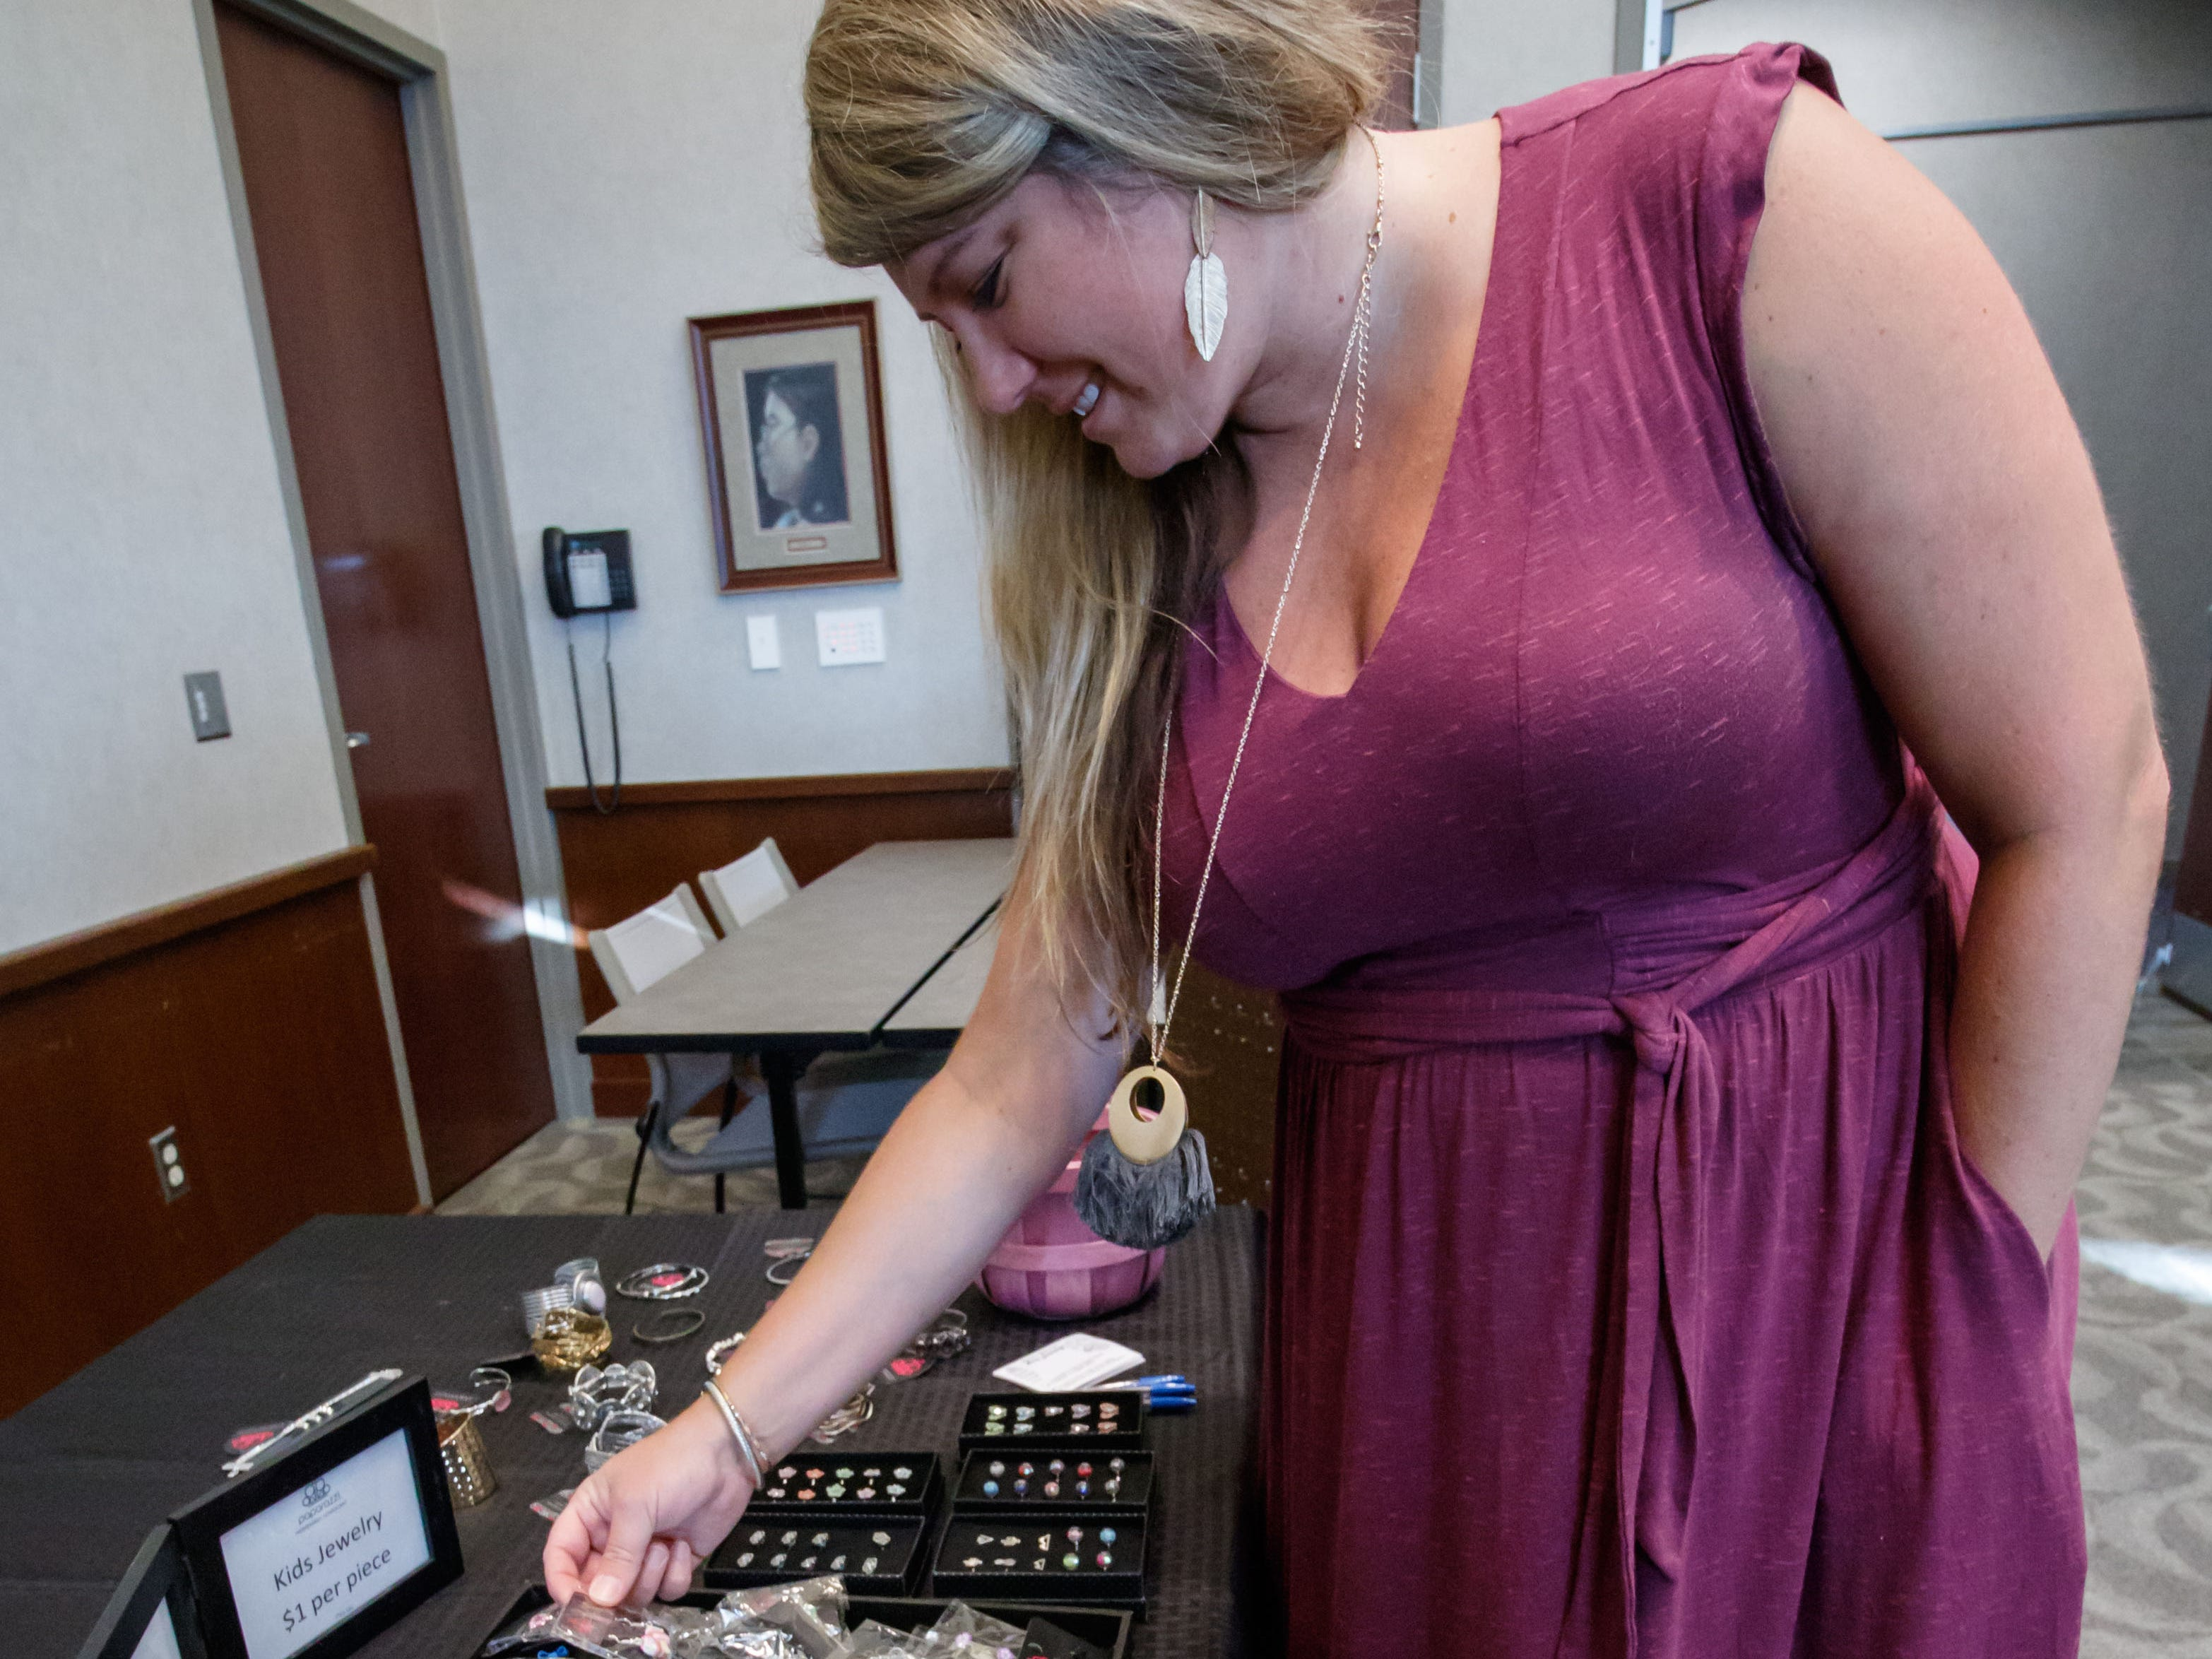 Jennifer Bjorson of Whitefish Bay shops for jewelry during the 2018 Holiday Bazaar at the Menomonee Falls Library on Saturday, Nov. 3. The annual event is a fundraising endeavor for the Friends of the Library, with a percentage of all sales supporting the group.